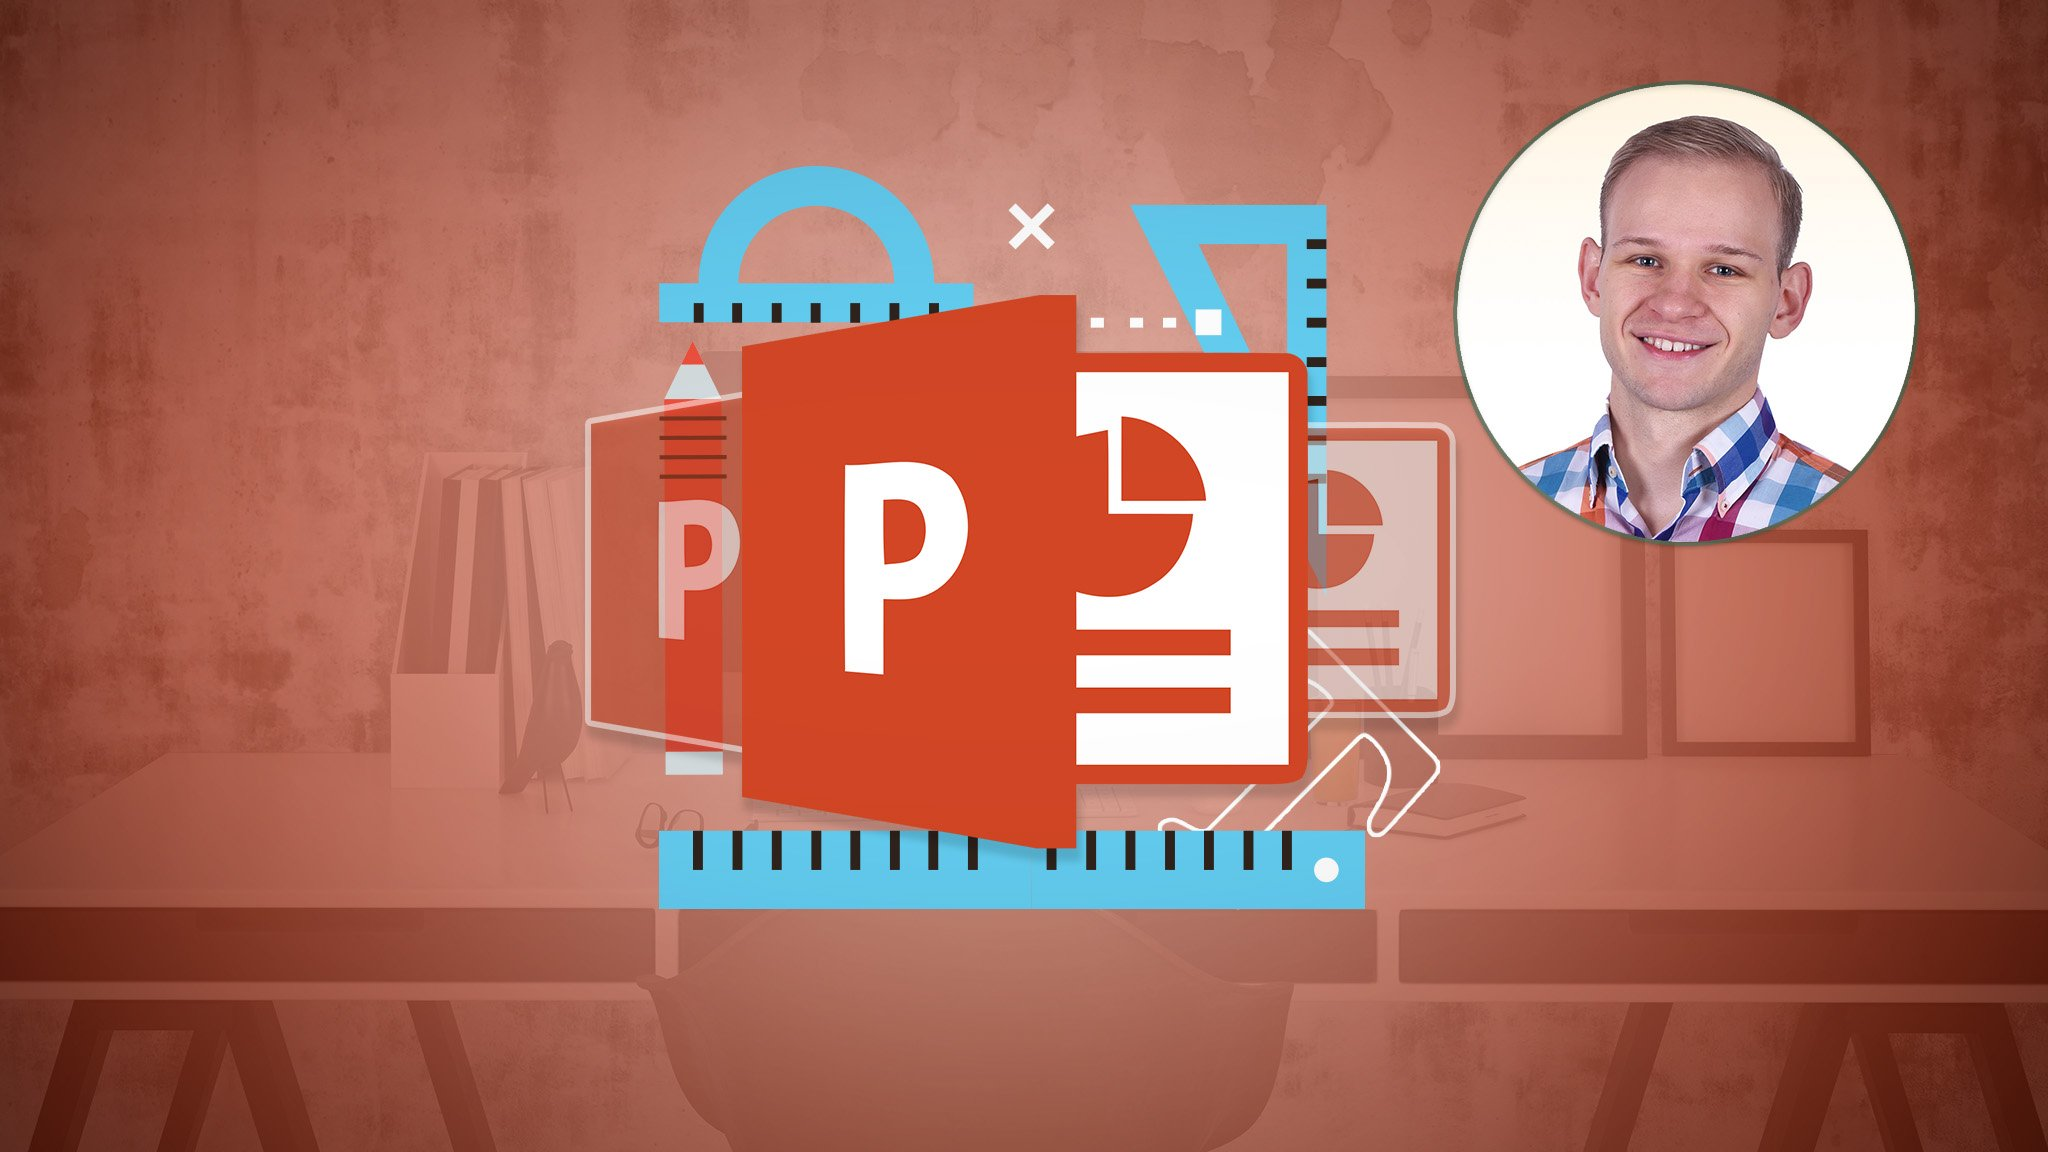 Kinetic Typography In Powerpoint Make An Animation Video Andrzej